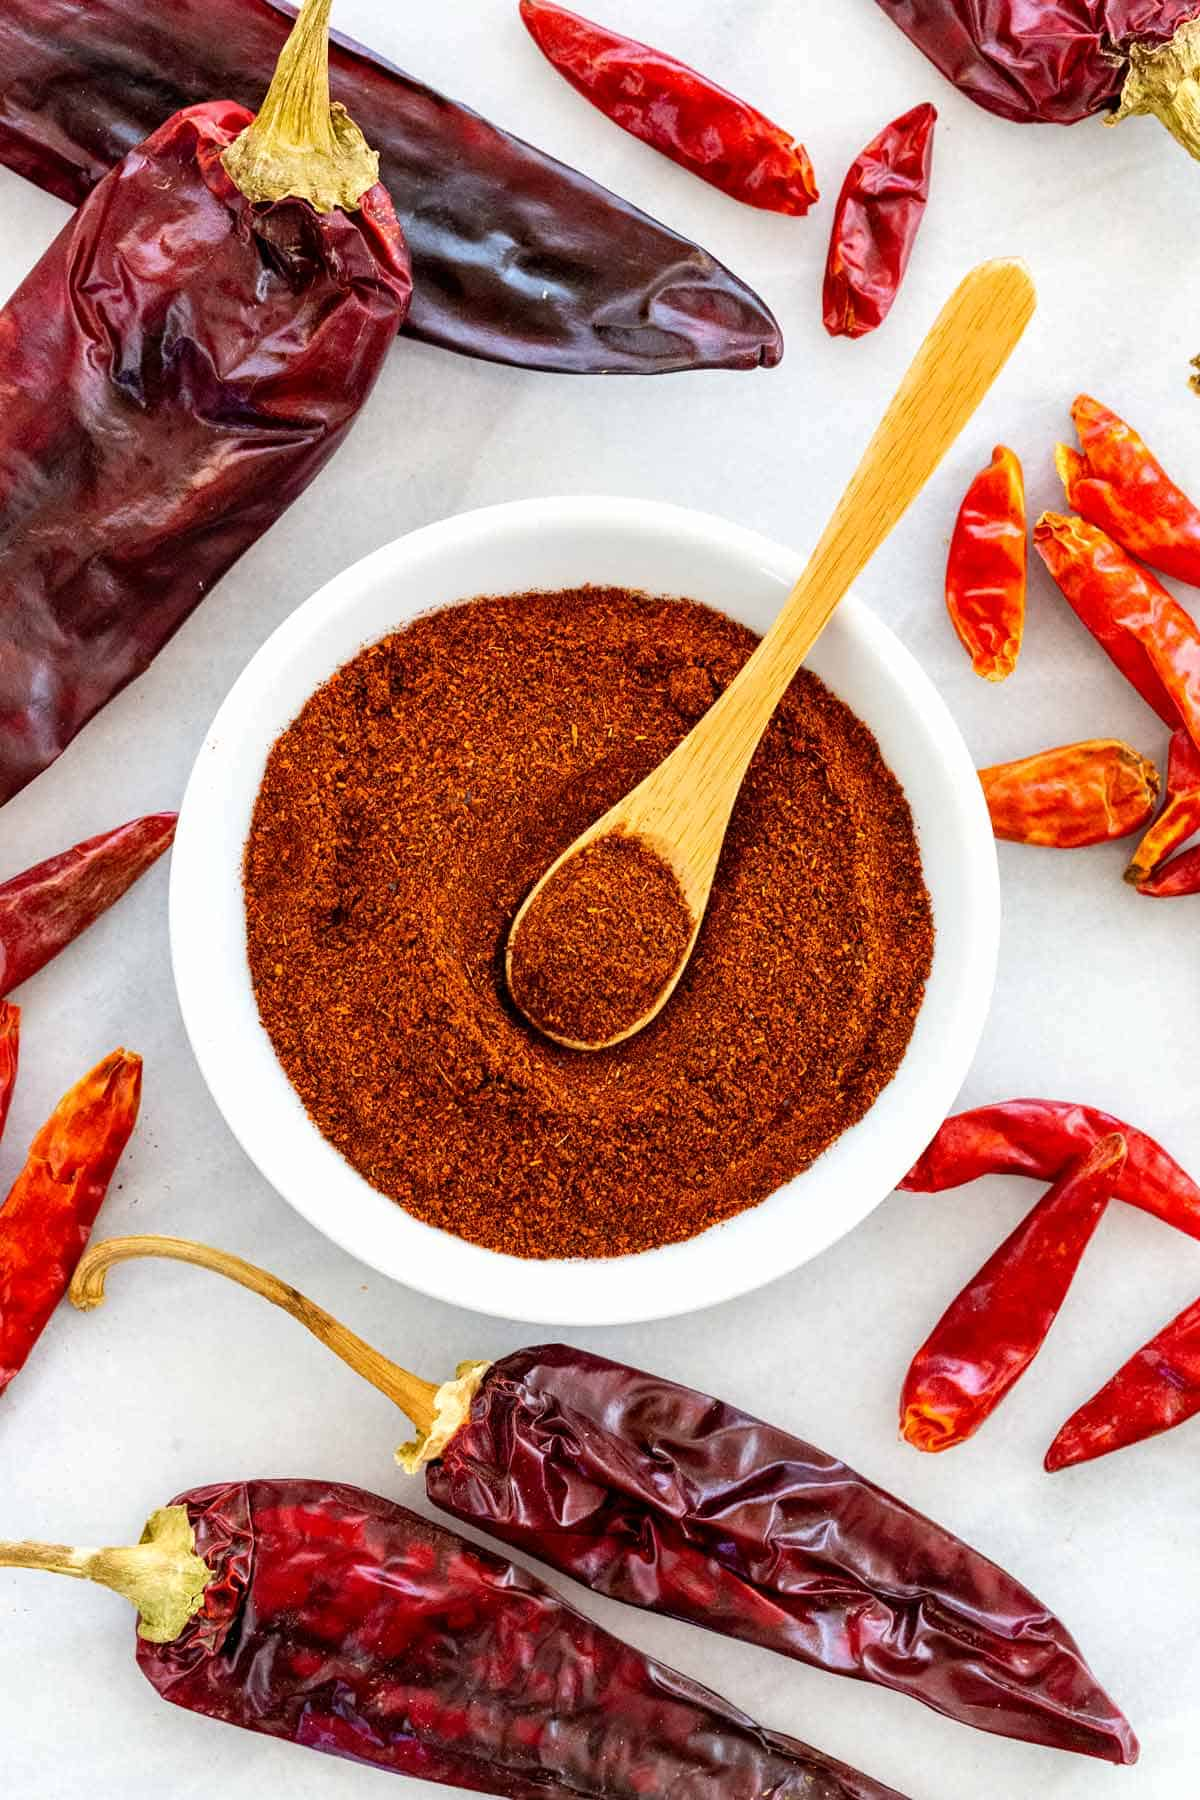 There's more to chili powder than just crushed, ground chilis. Let's learn all about this popular spice and what to do when you don't have it on hand. #chilipowder #chilies #chilipeppers